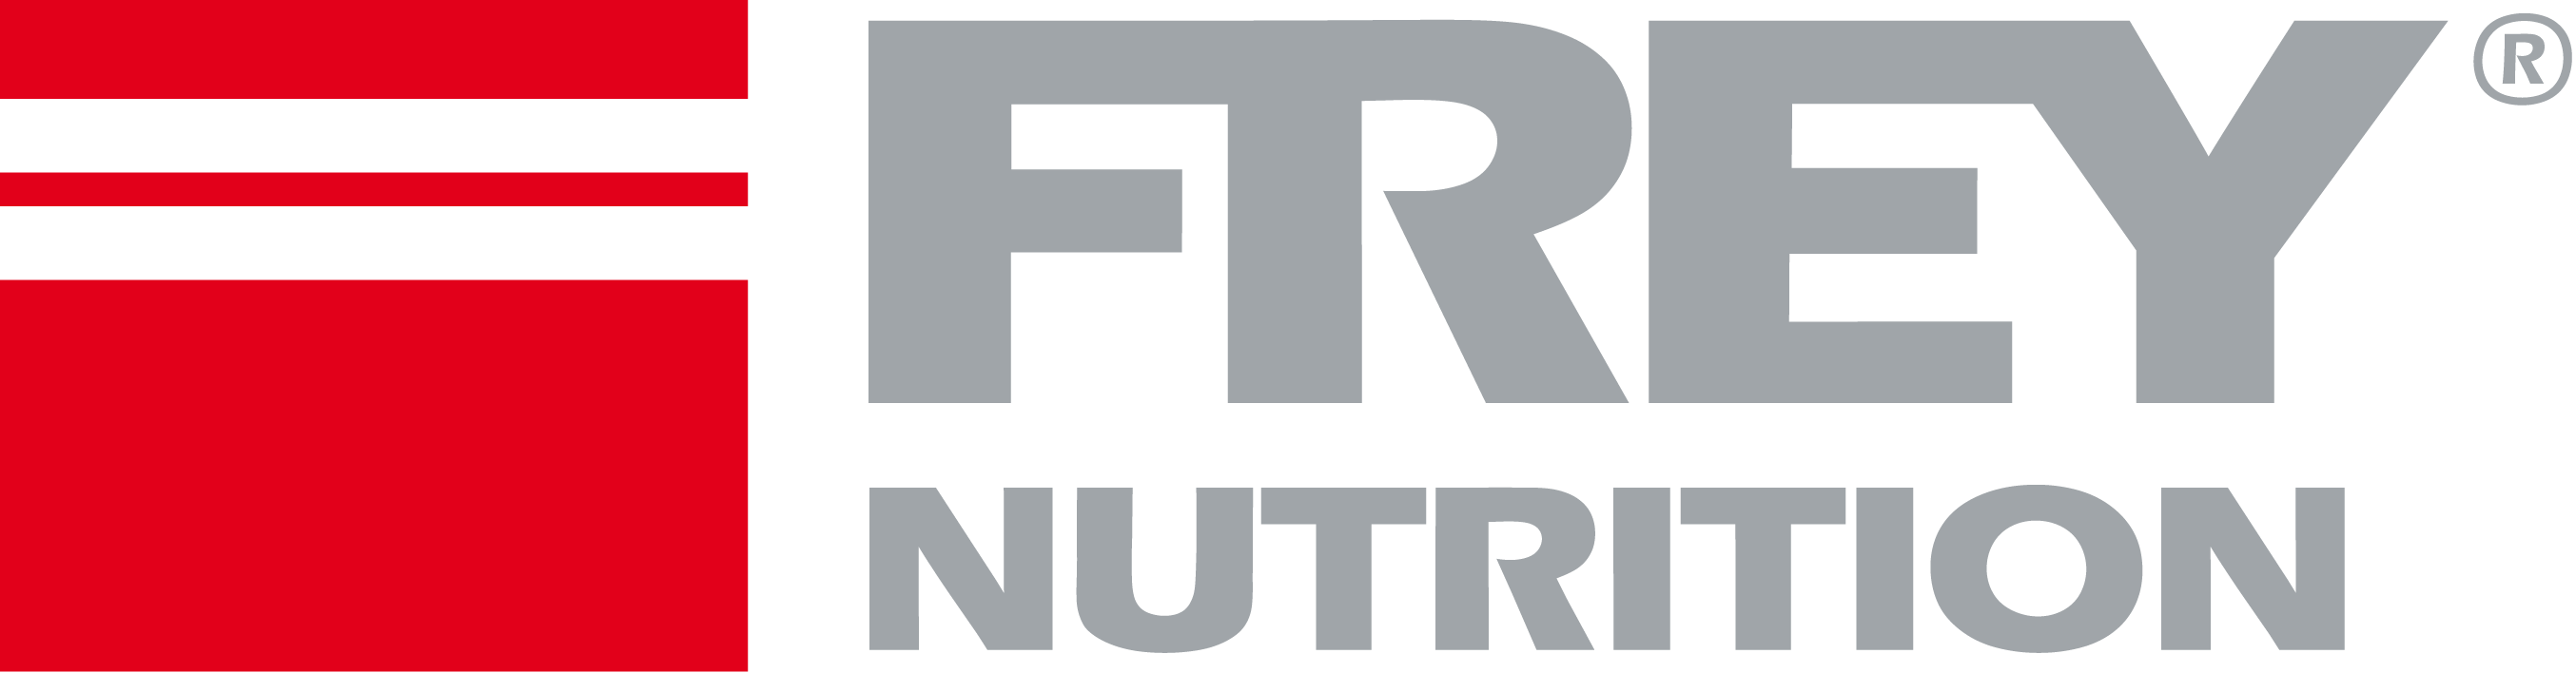 frey nutrition logo red grey gradient